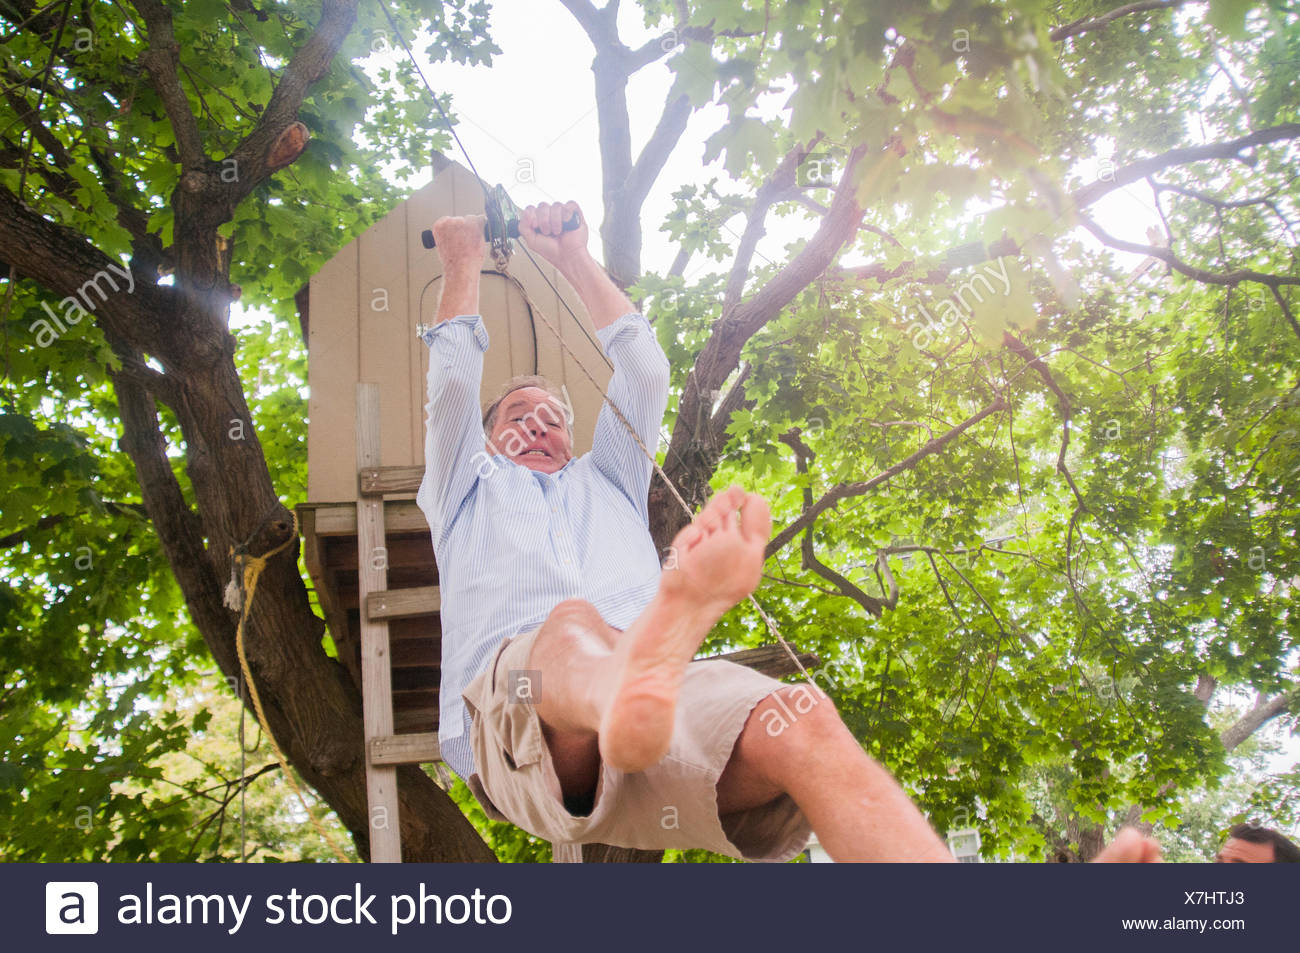 Mature man sliding down on pulley from tree house Stock Photo